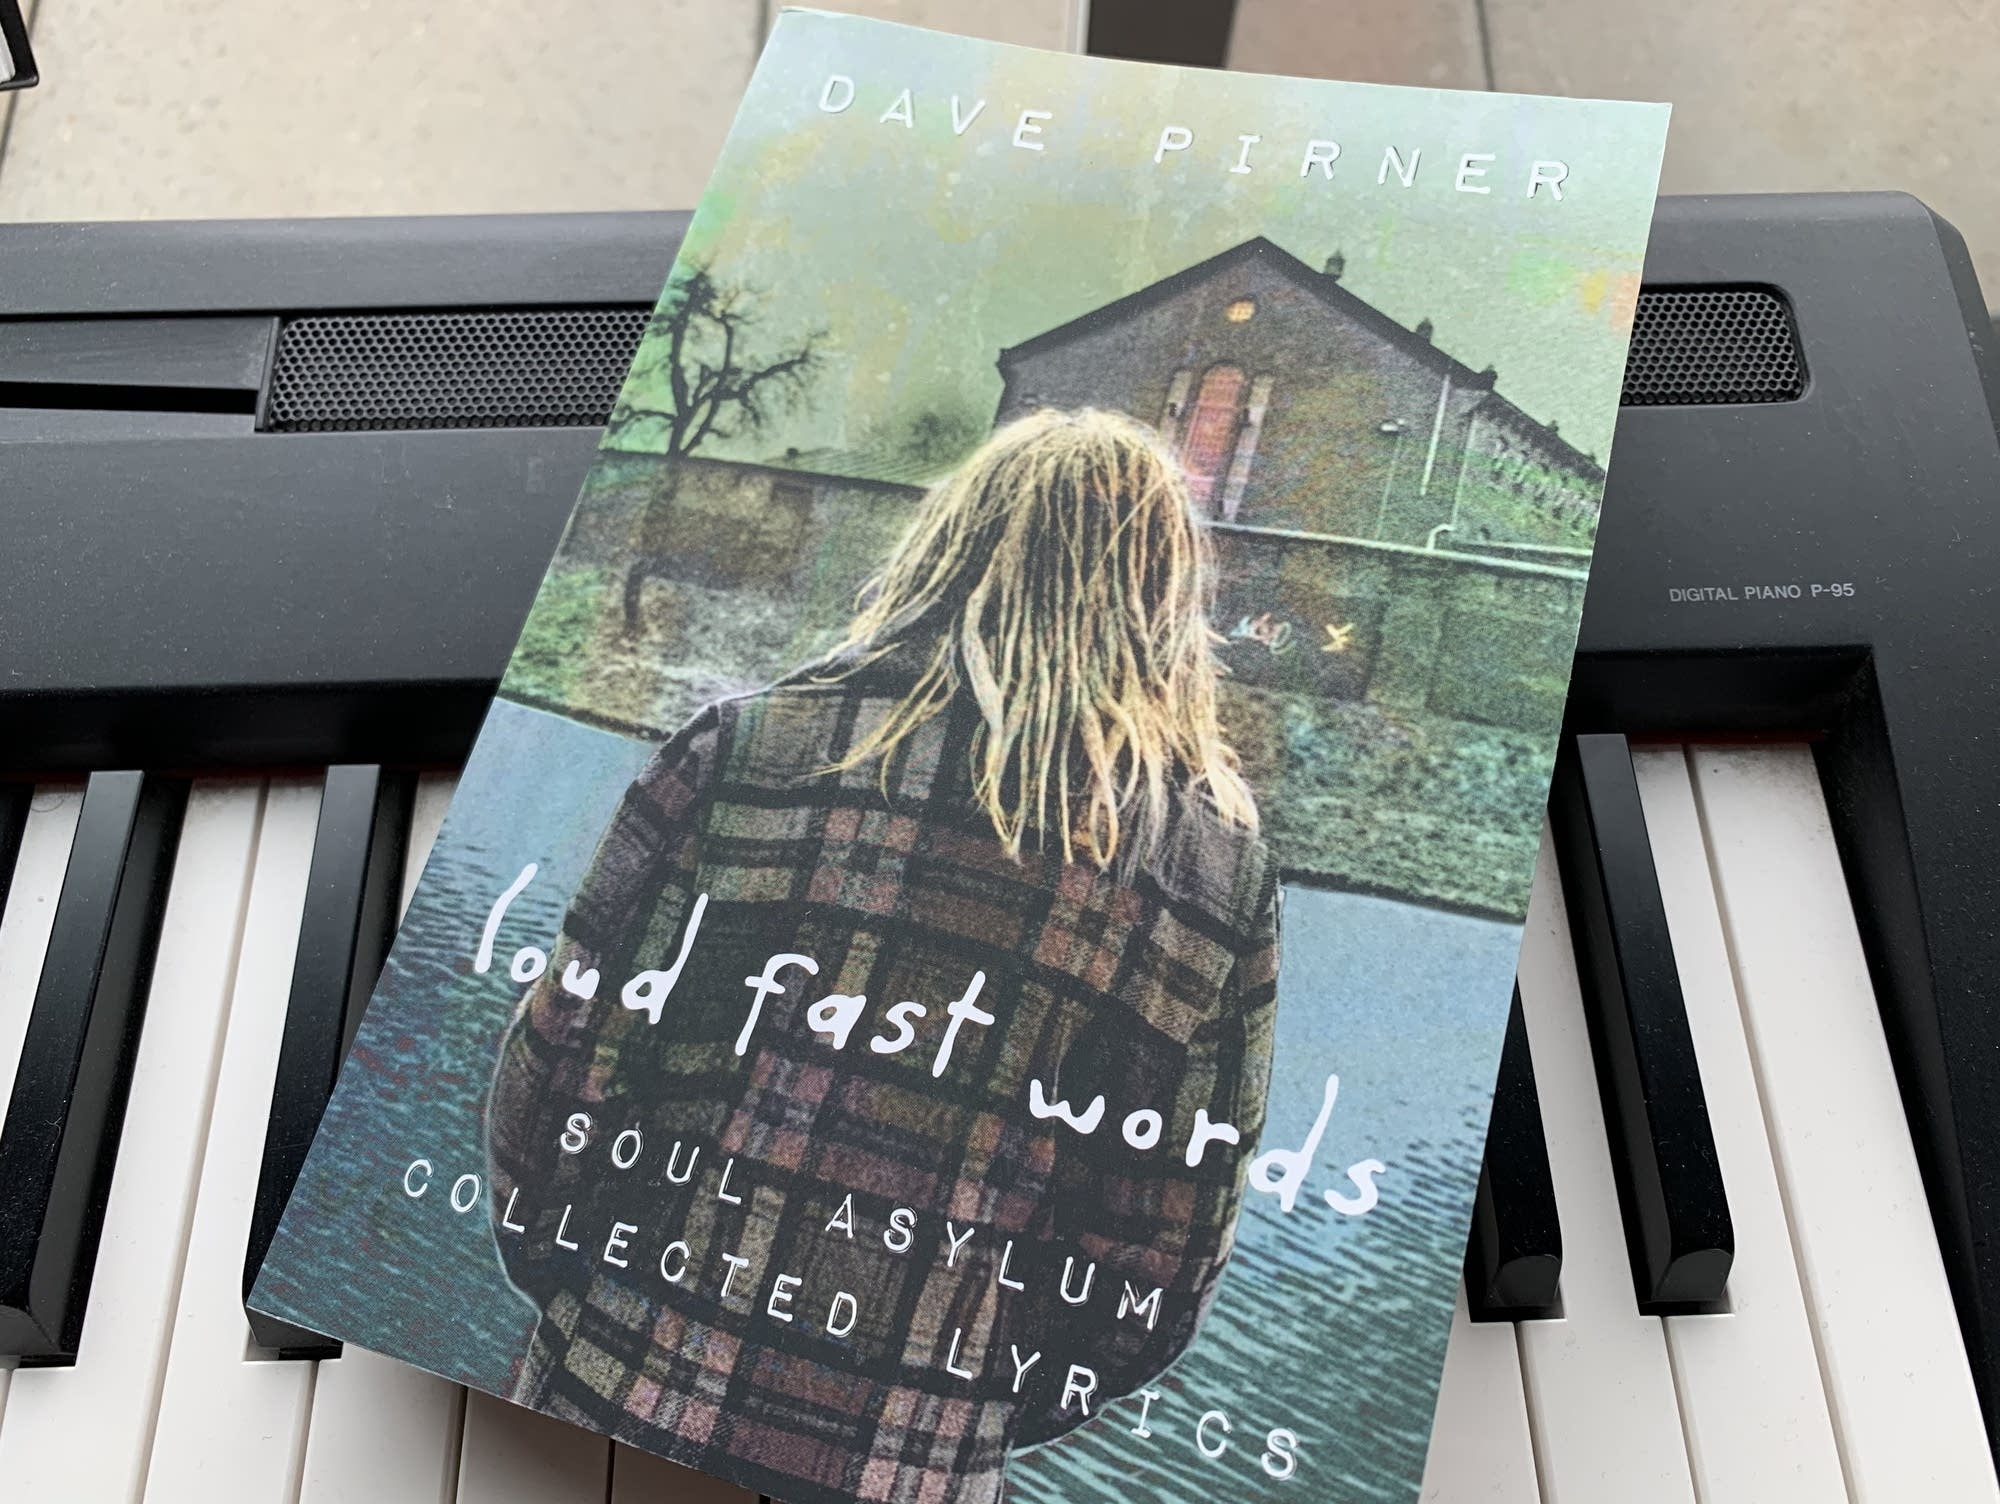 Dave Pirner's 'Loud Fast Words: Soul Asylum Collected Lyrics.'